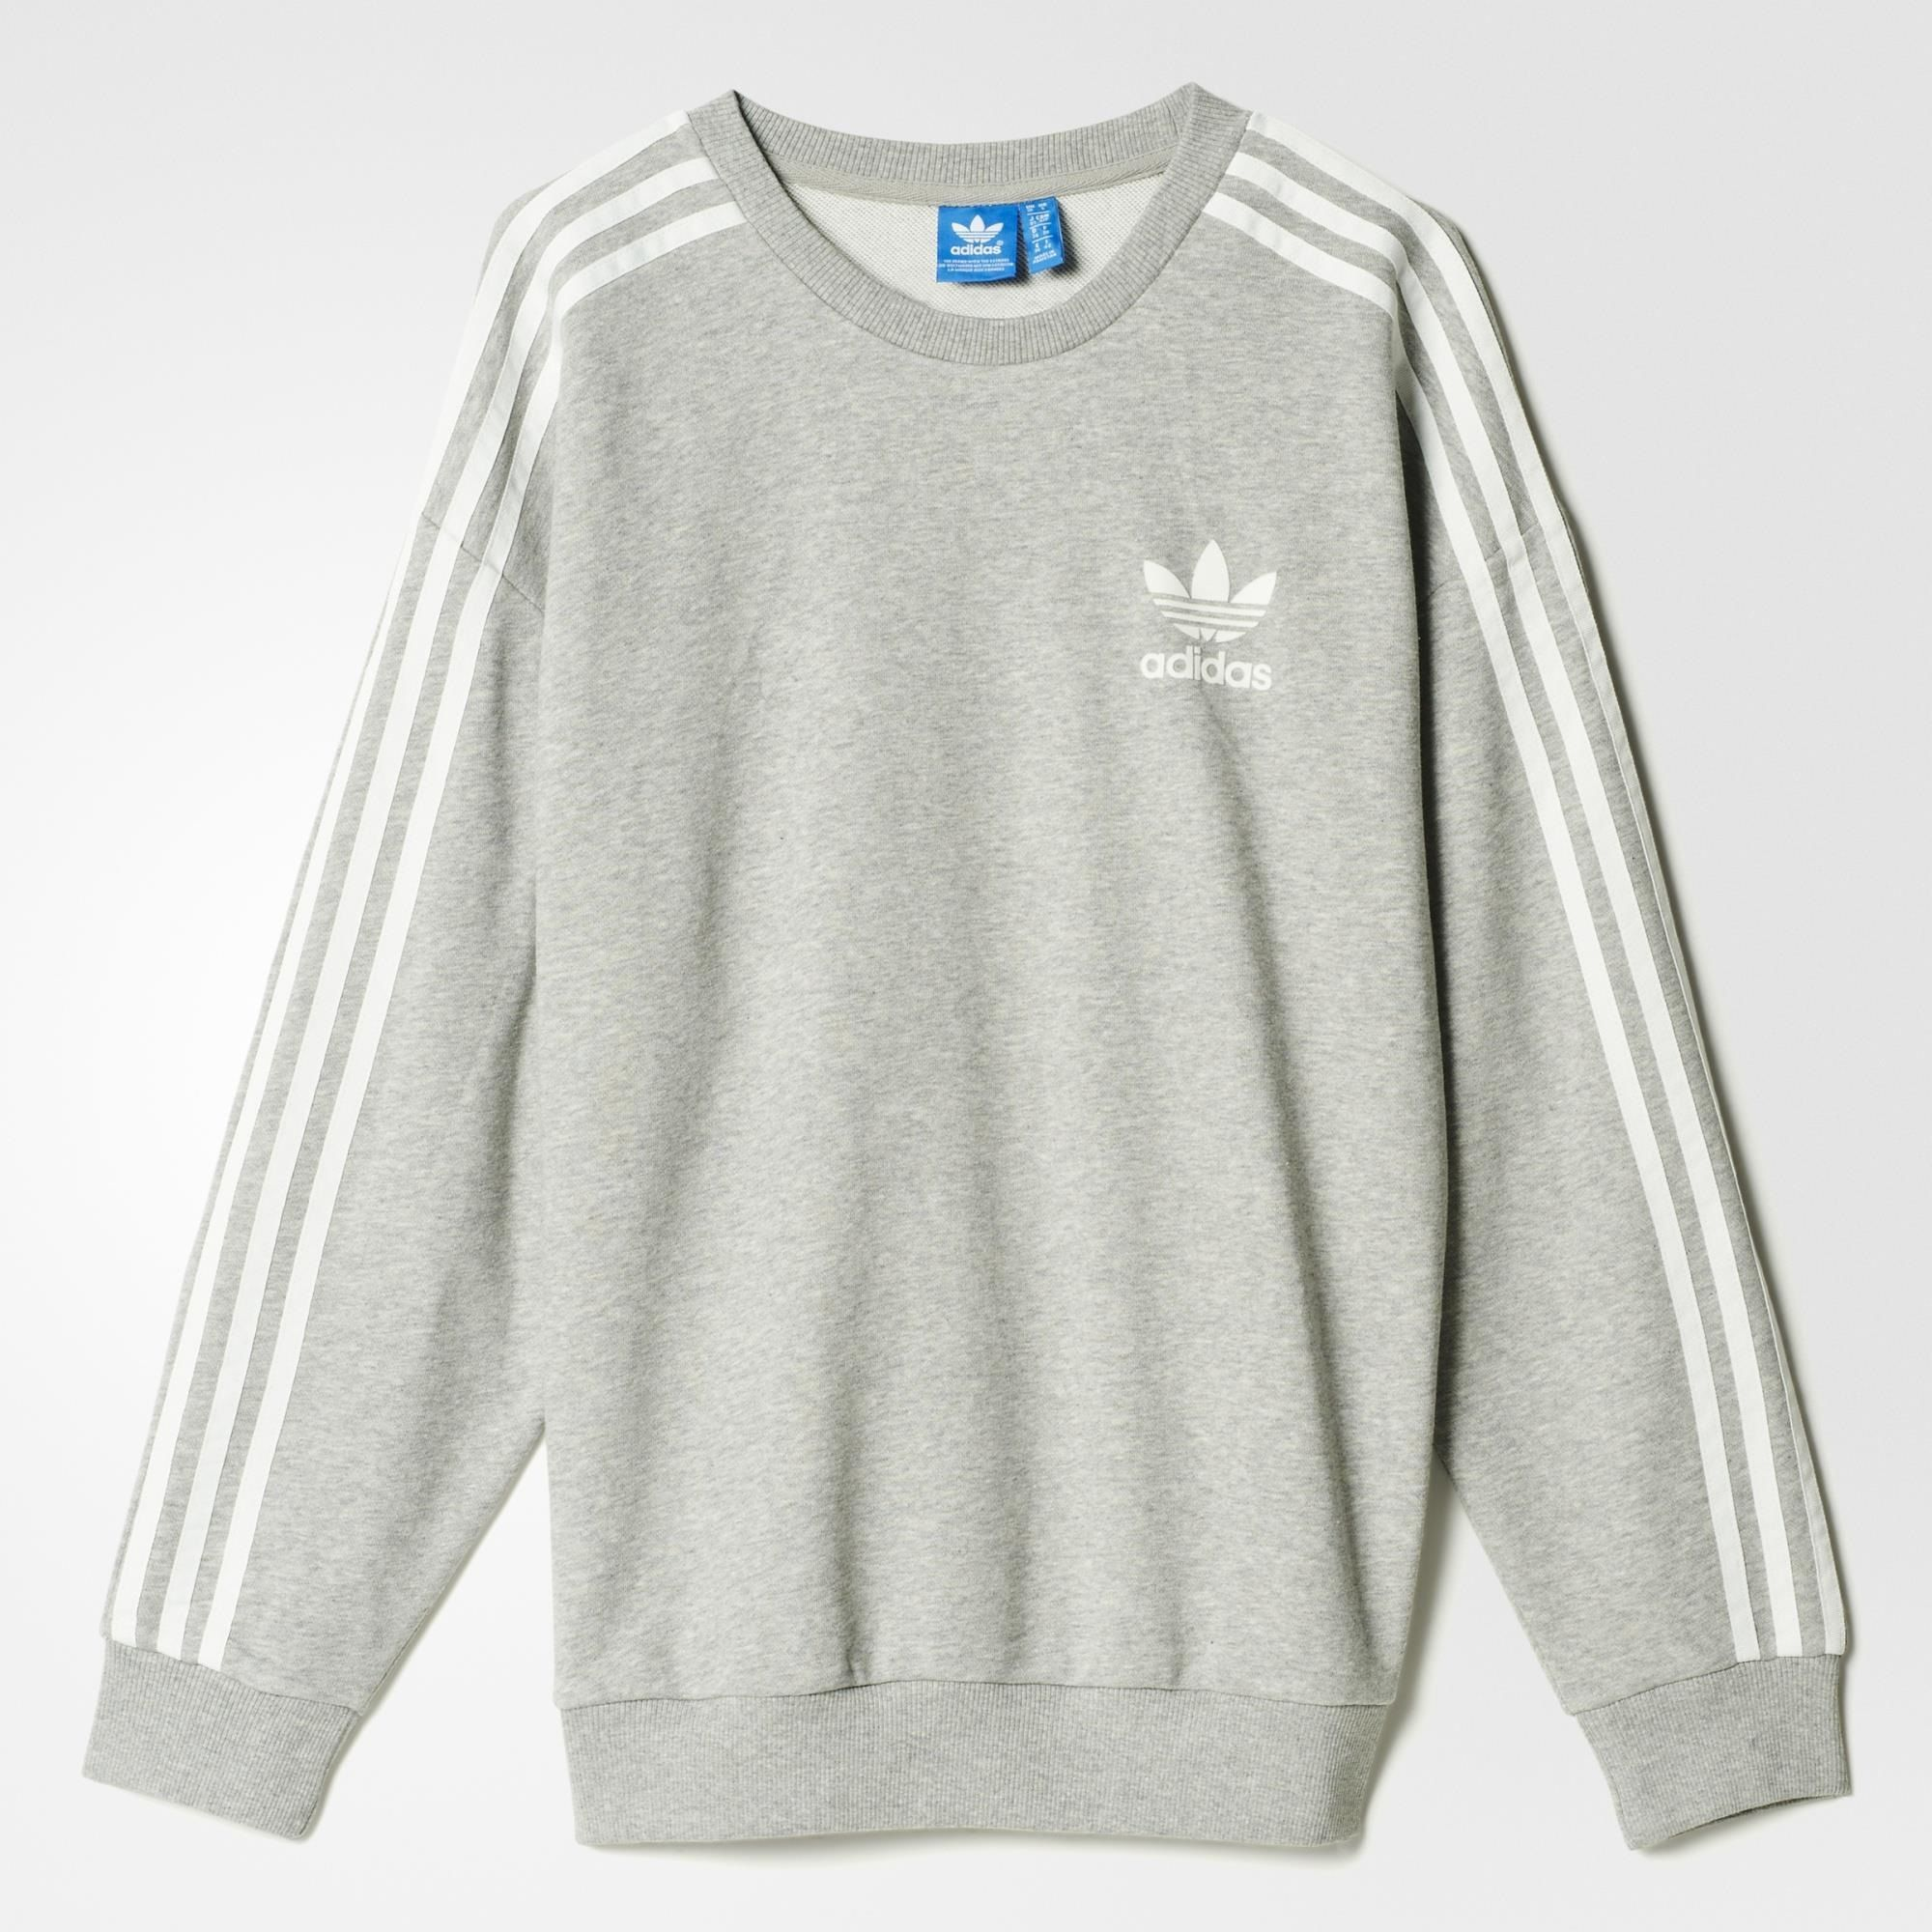 adidas beckenbauer sweatshirt grey adidas us. Black Bedroom Furniture Sets. Home Design Ideas